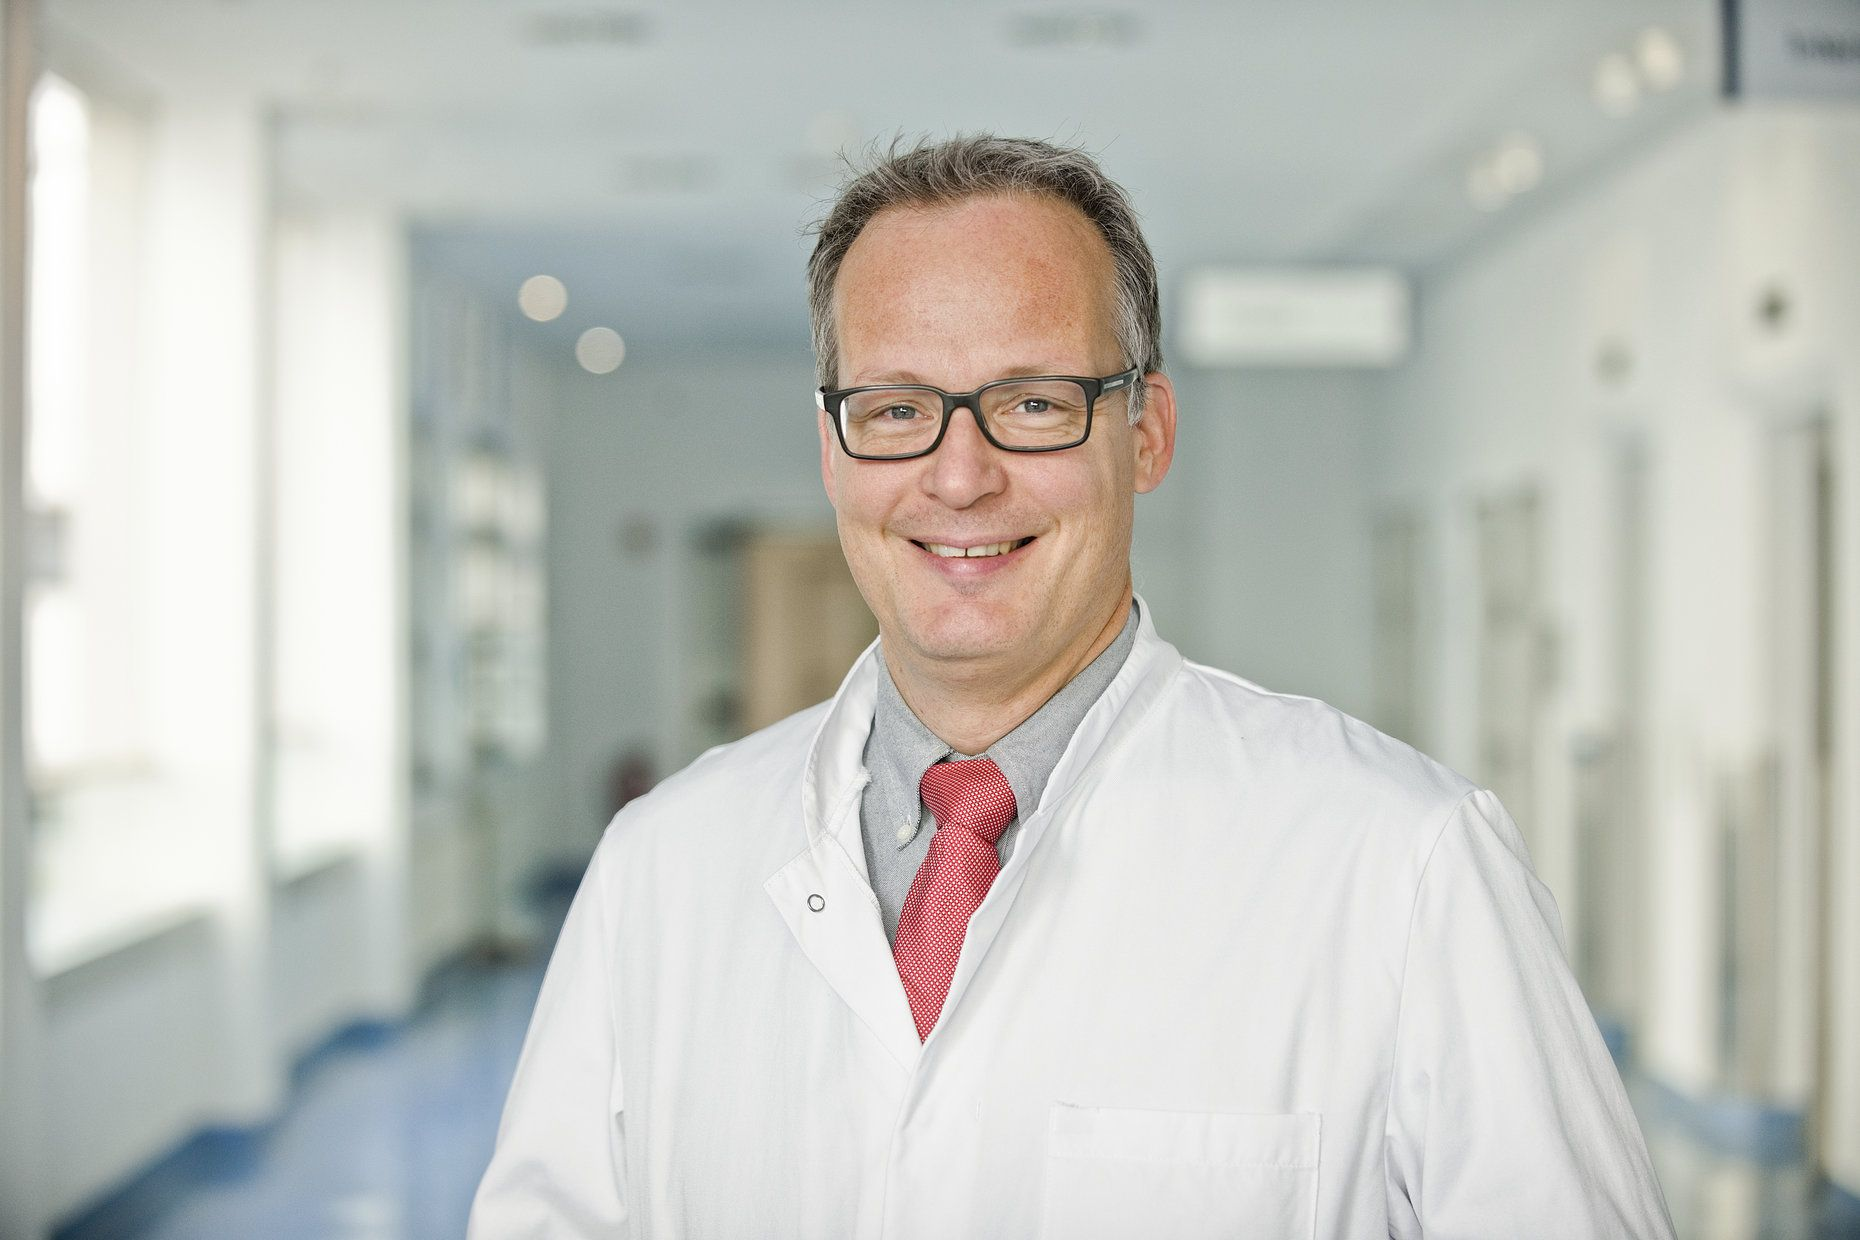 Dr. Marc Theisen